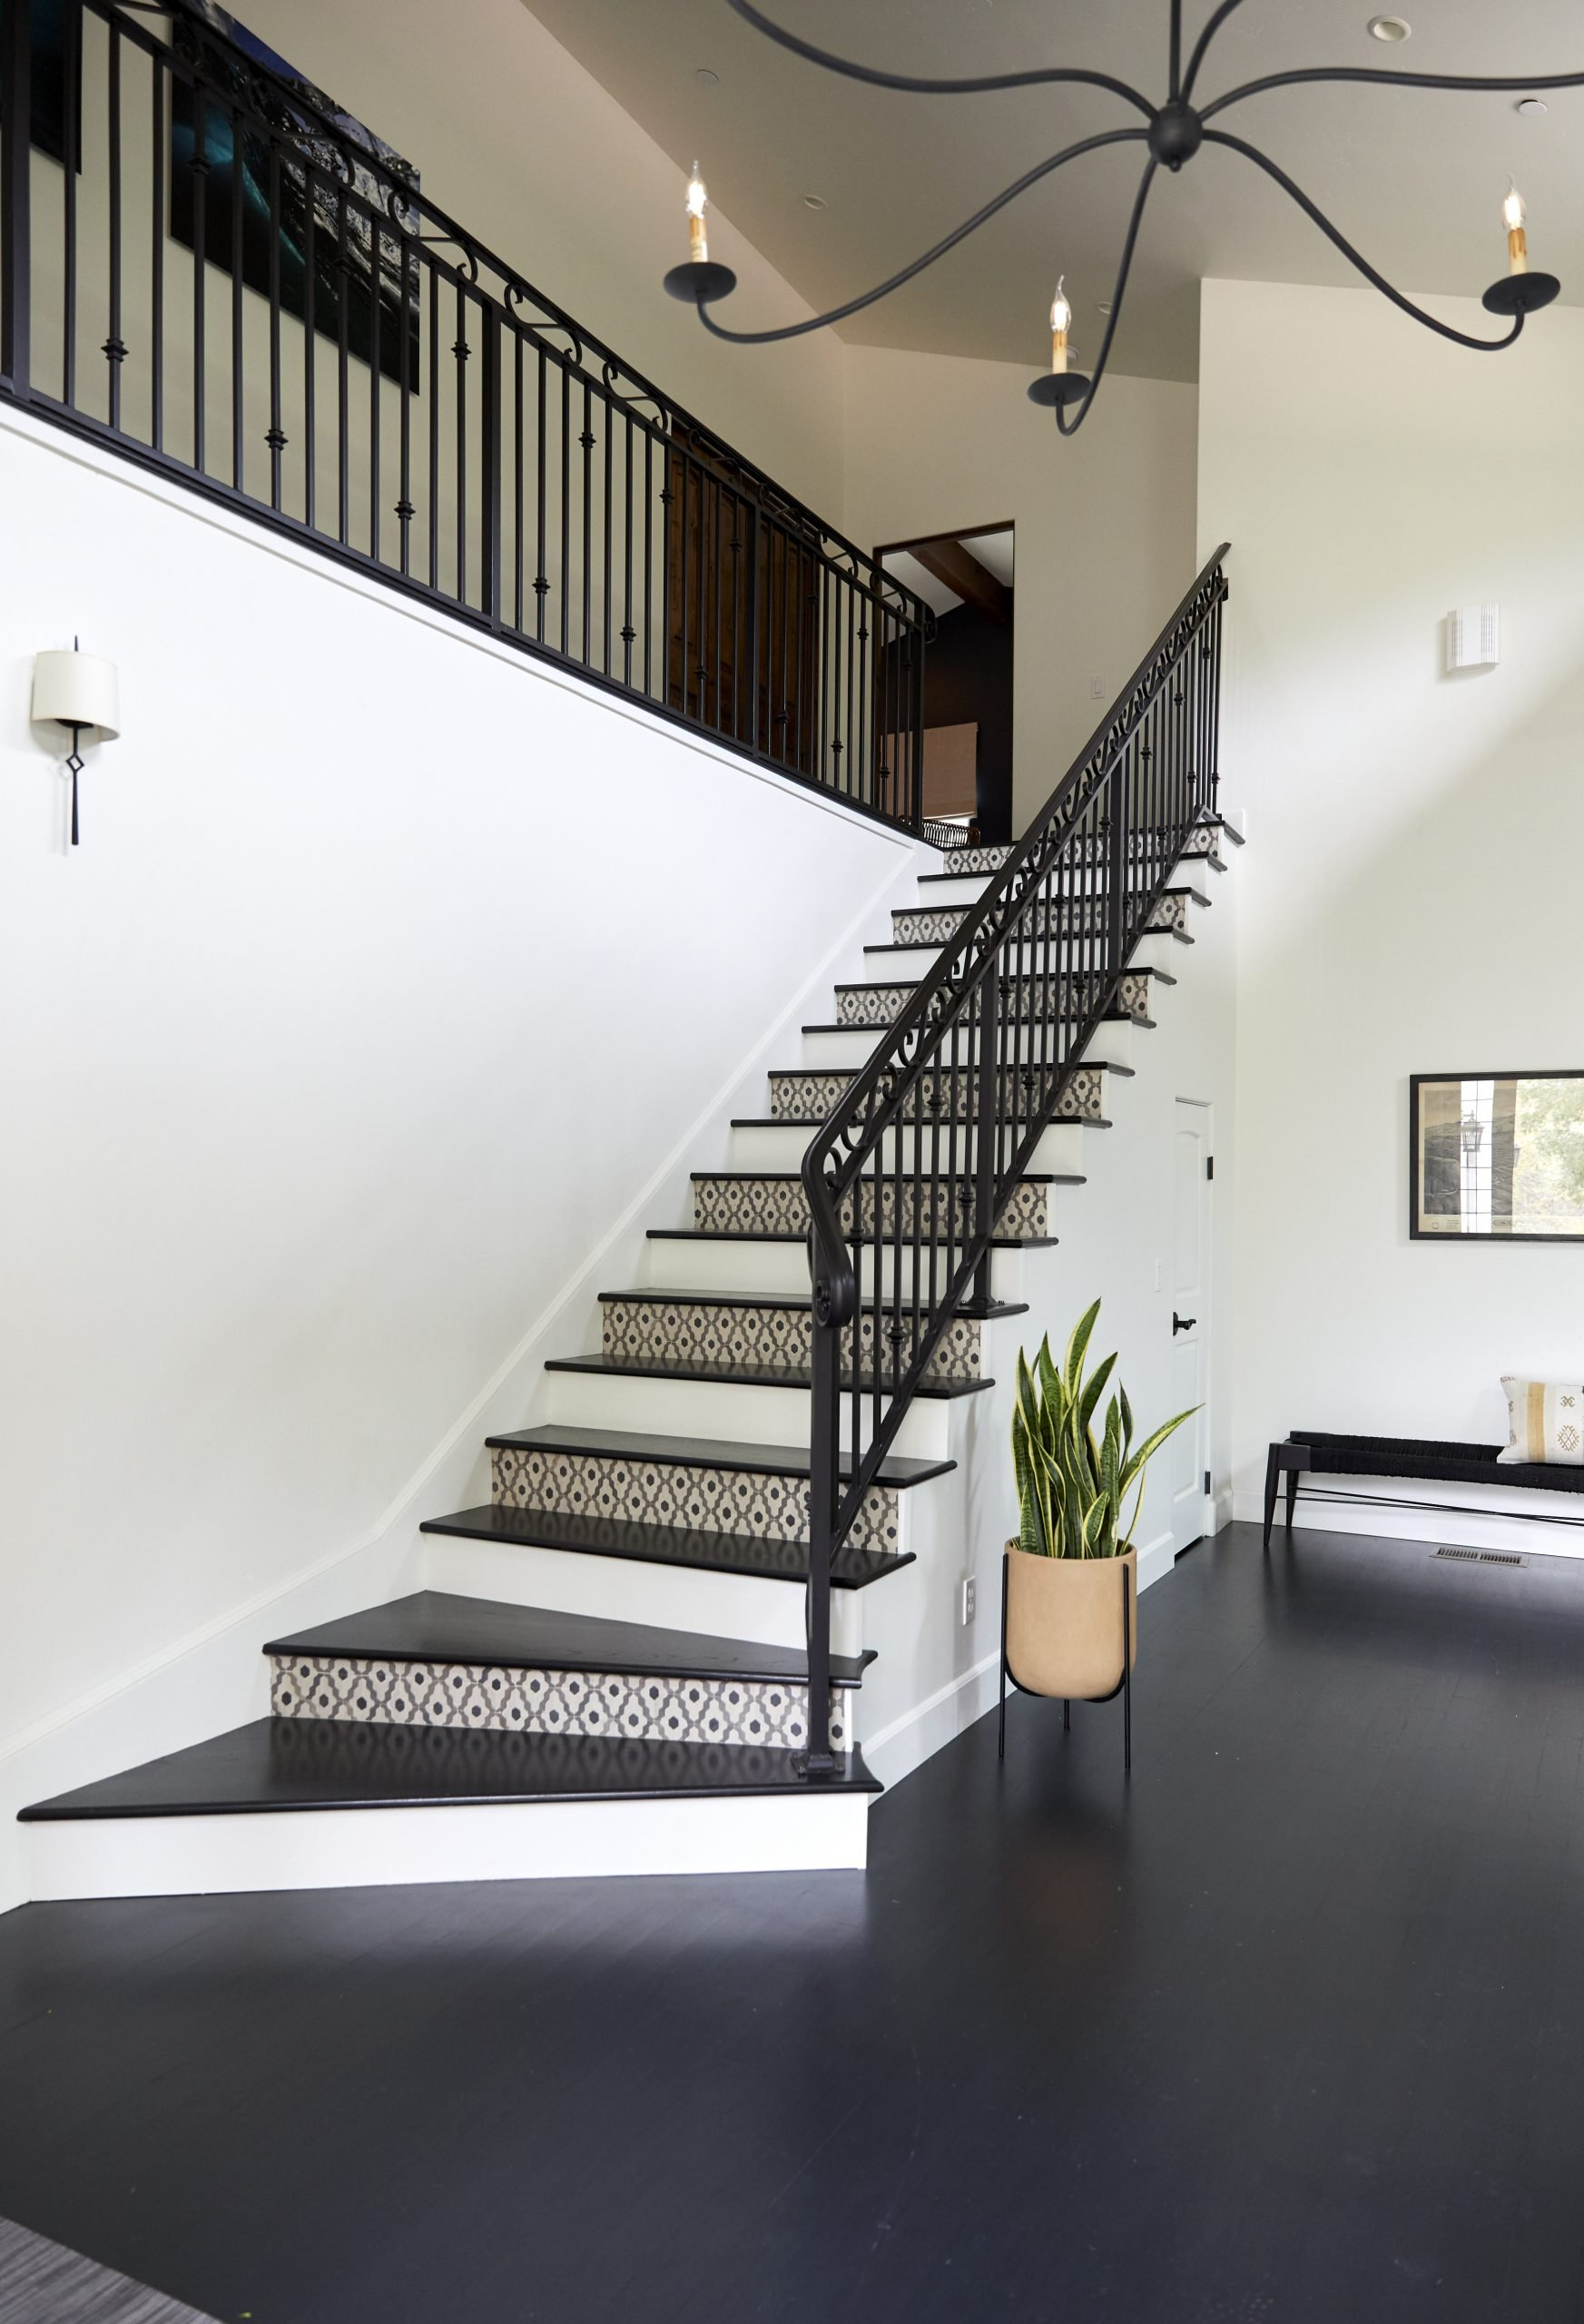 To visually represent a staircase built by Ashton & Hope Construction, a contractor in Santa Barbara, CA